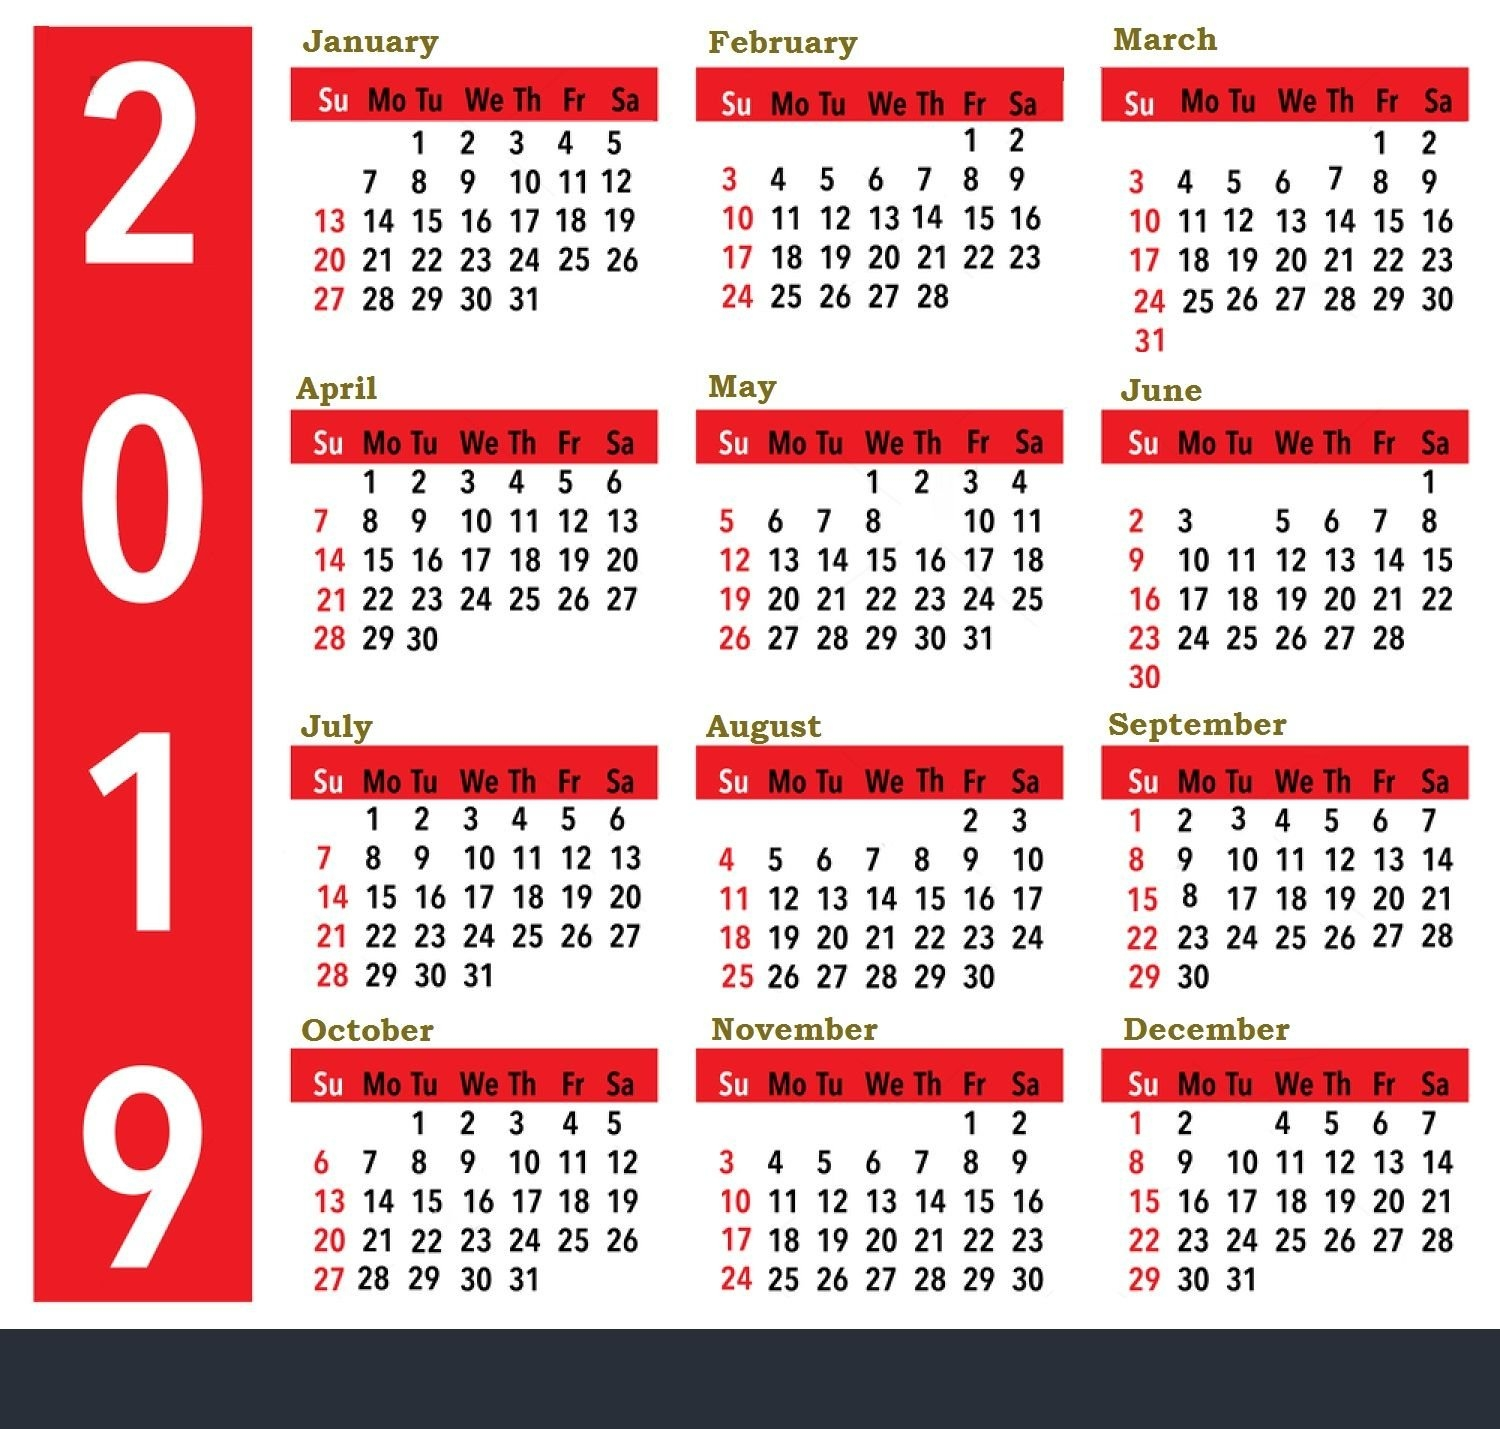 2019 Calendar For United States Holidays All Important Dates And Calendar 2019 Important Dates